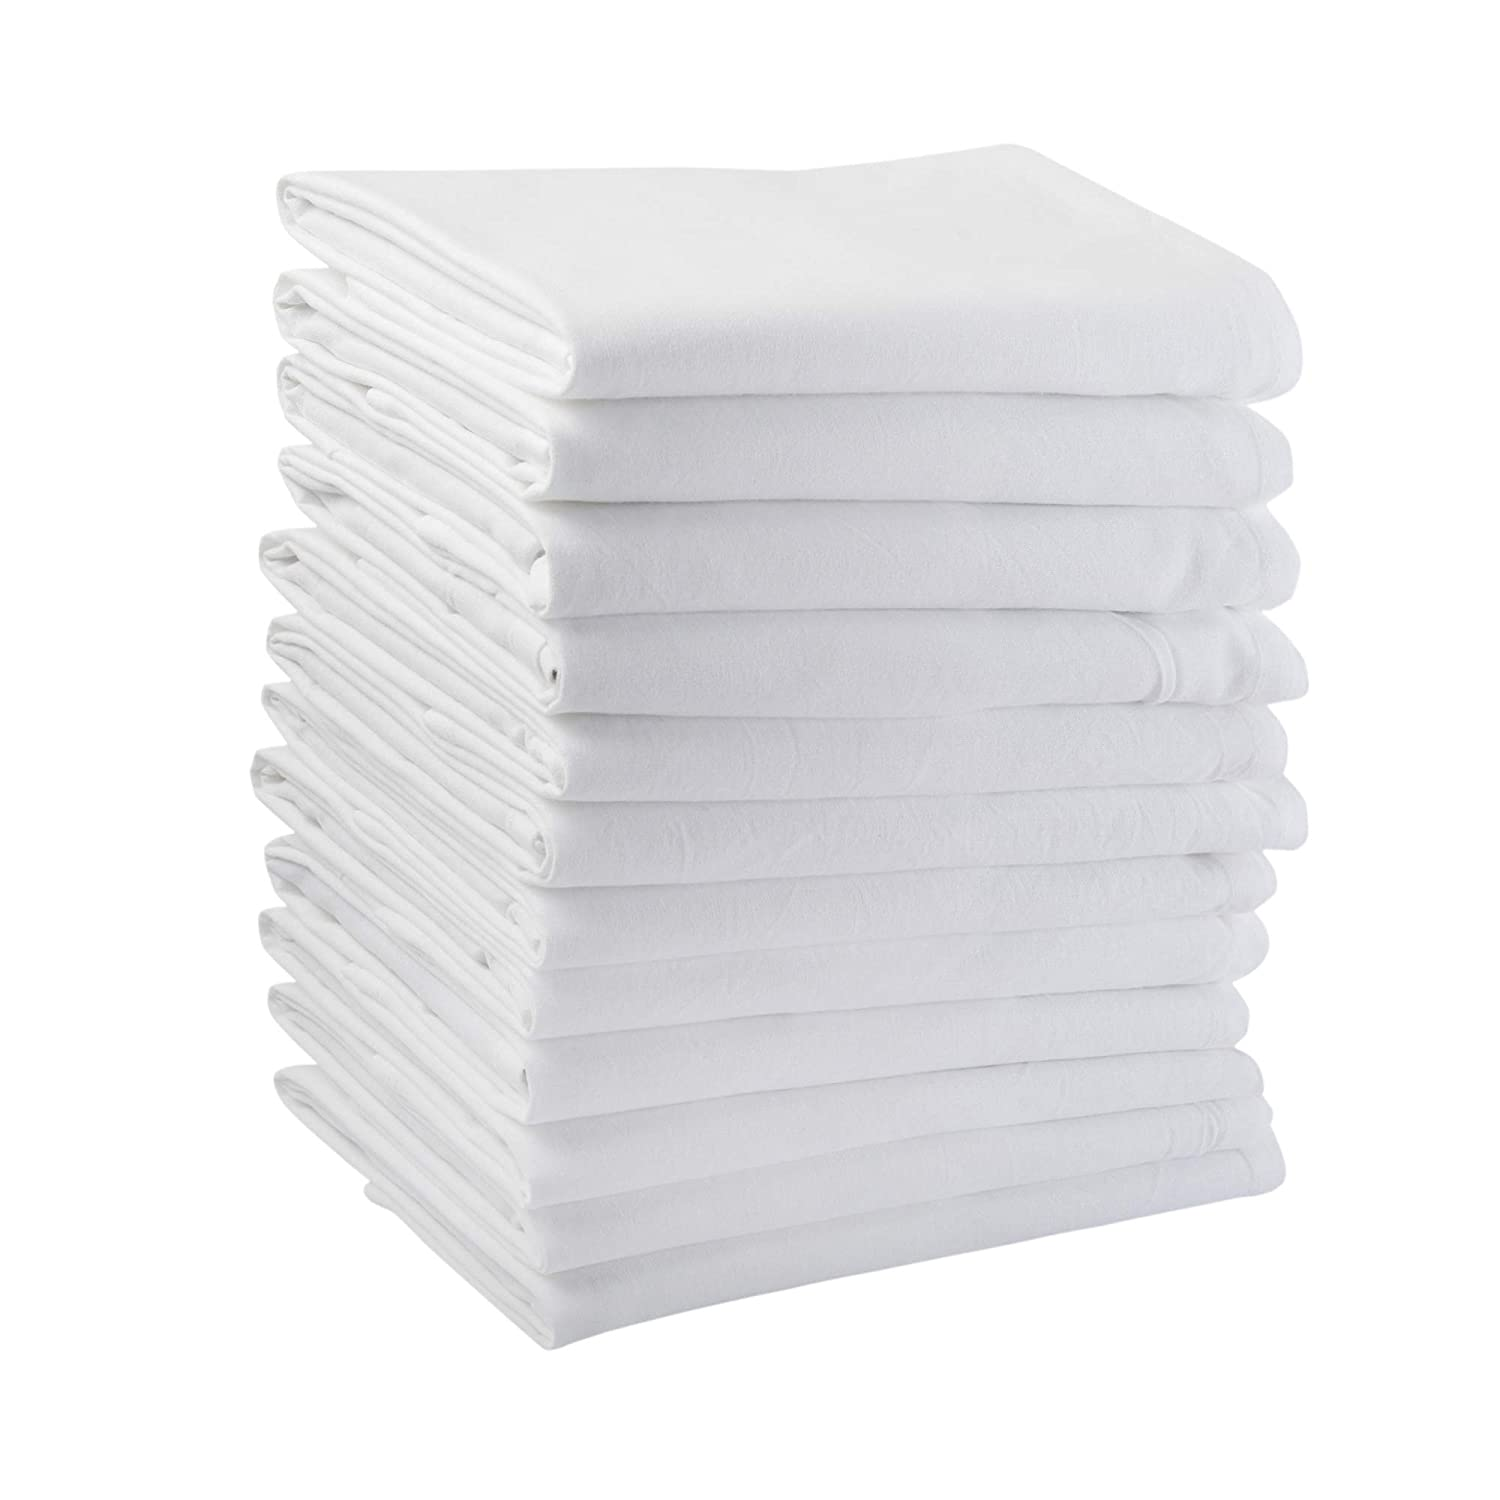 Flour Sack Towels, Set of 12, Multi-Purpose White Kitchen Towels, 100% Cotton, 28 x 28, Very Soft, Highly Absorbent, Tea Towels for Embroidery, Pre Washed to minimize Shrinkage